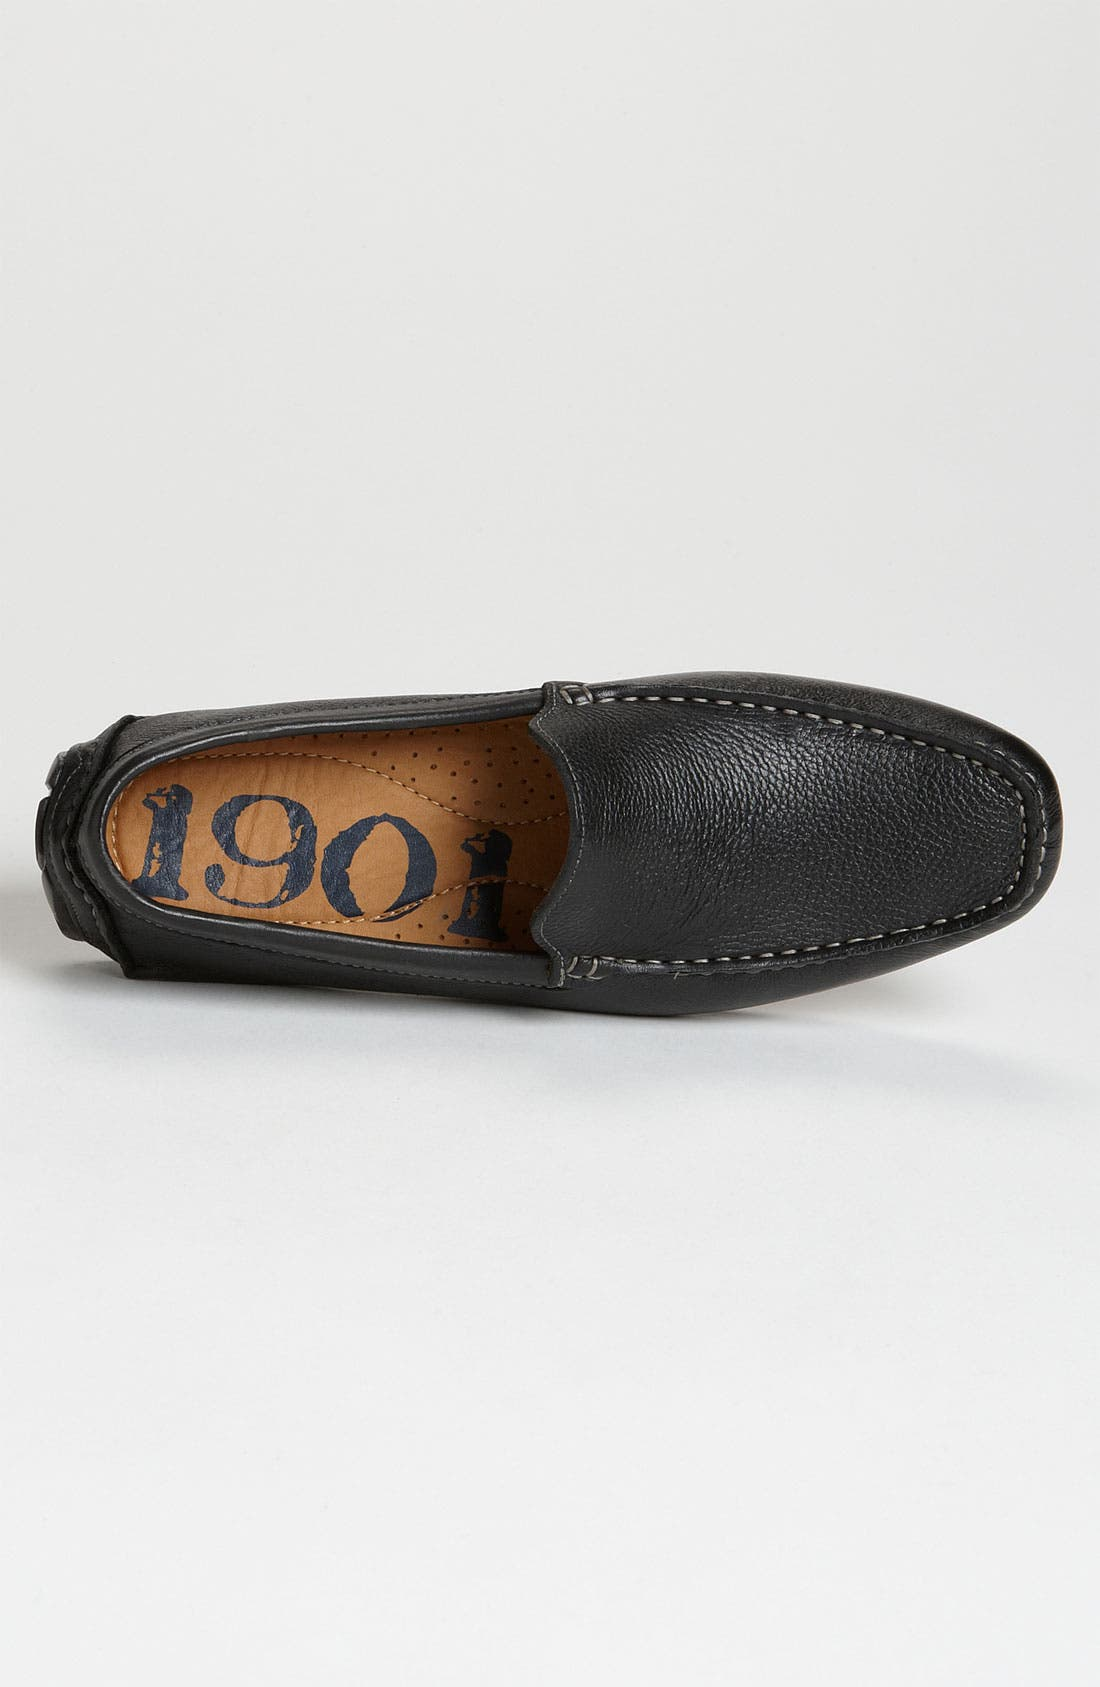 Alternate Image 3  - 1901 'Coronado' Driving Shoe